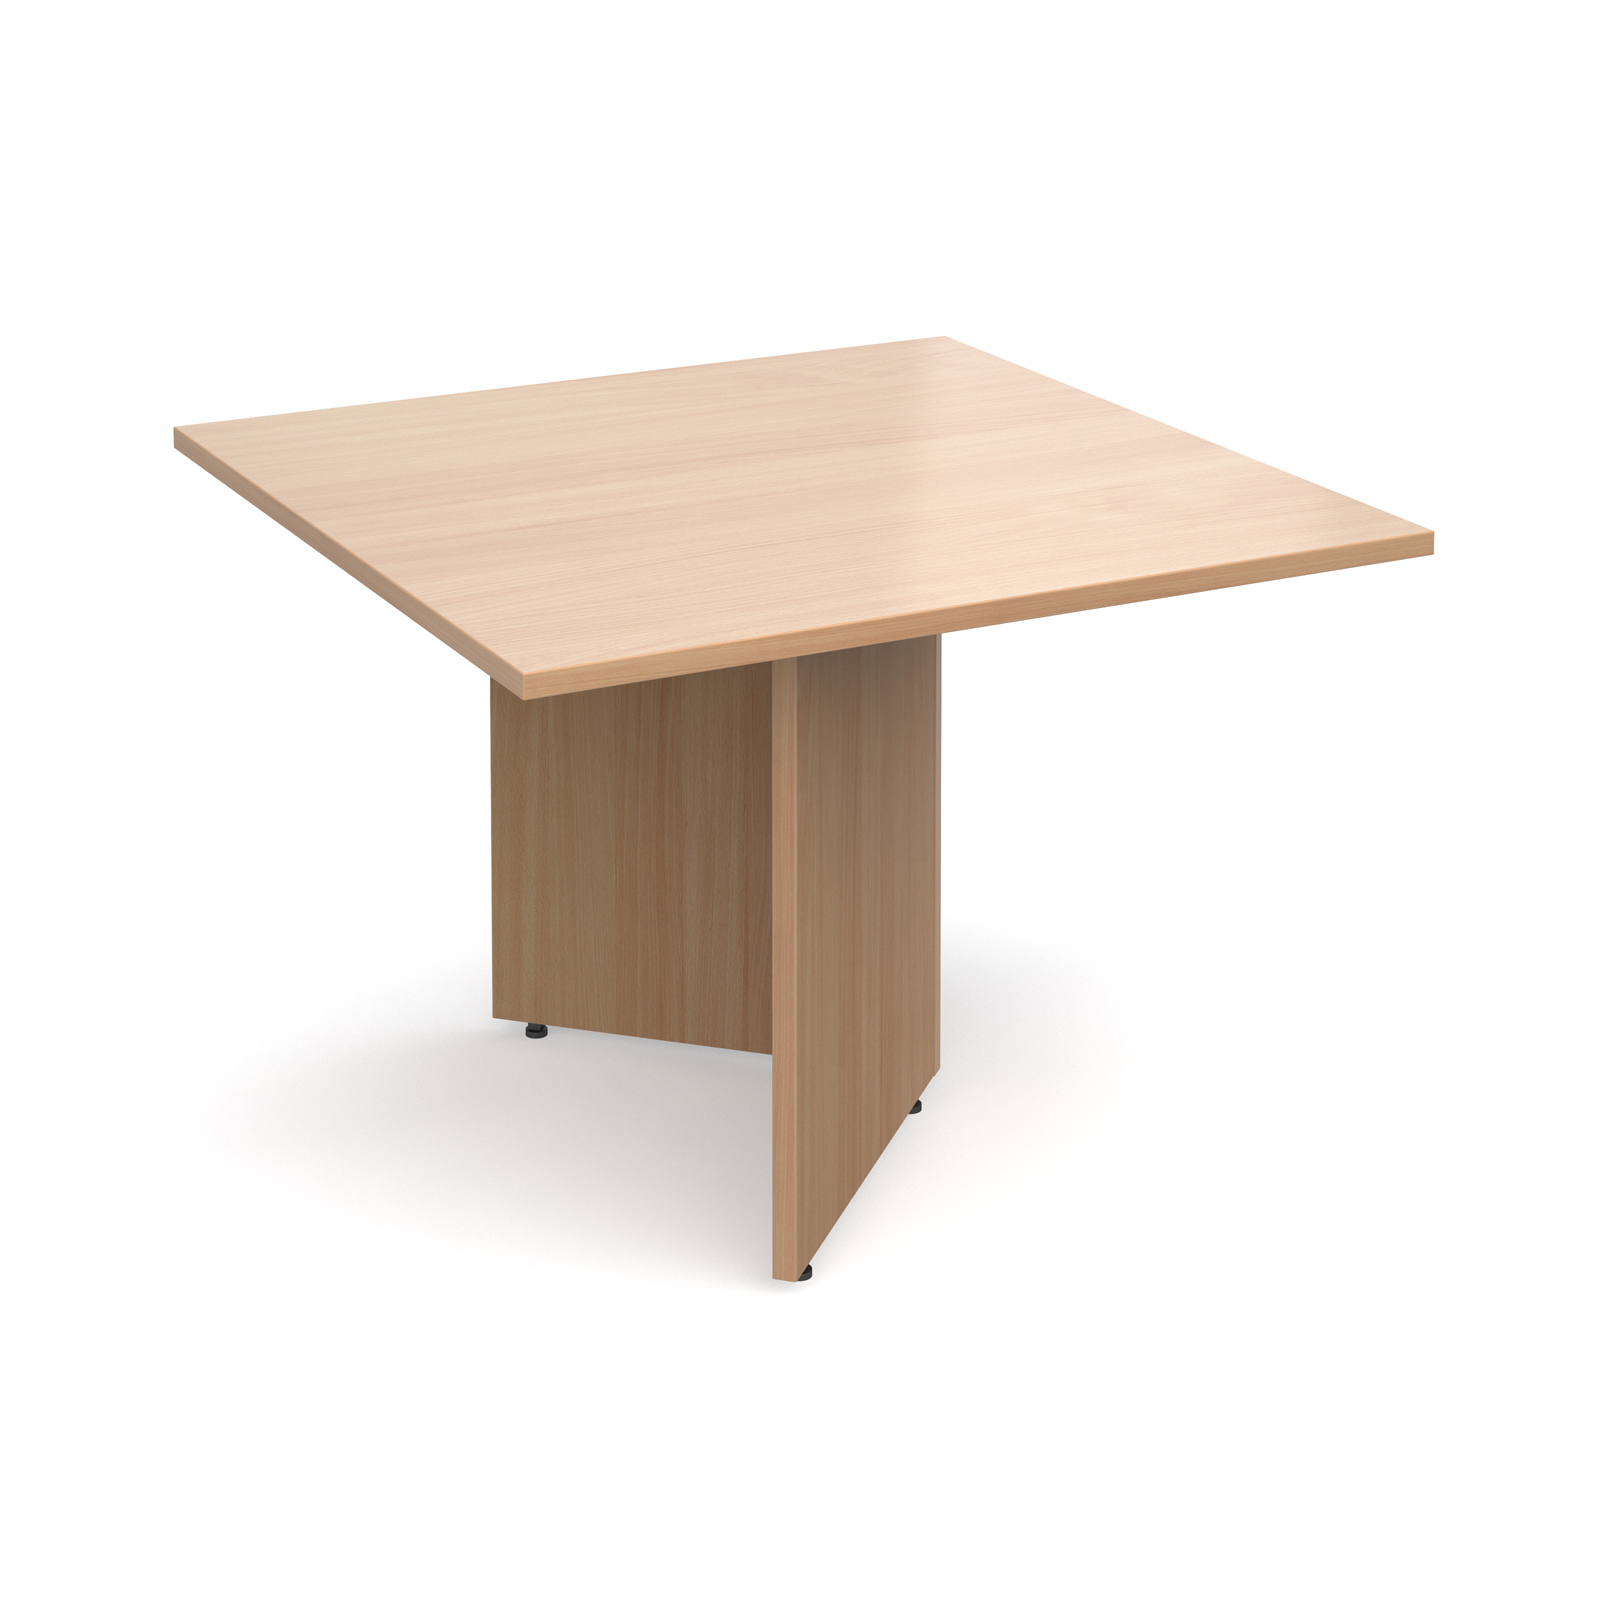 Boardroom / Meeting Arrow head leg square extension table